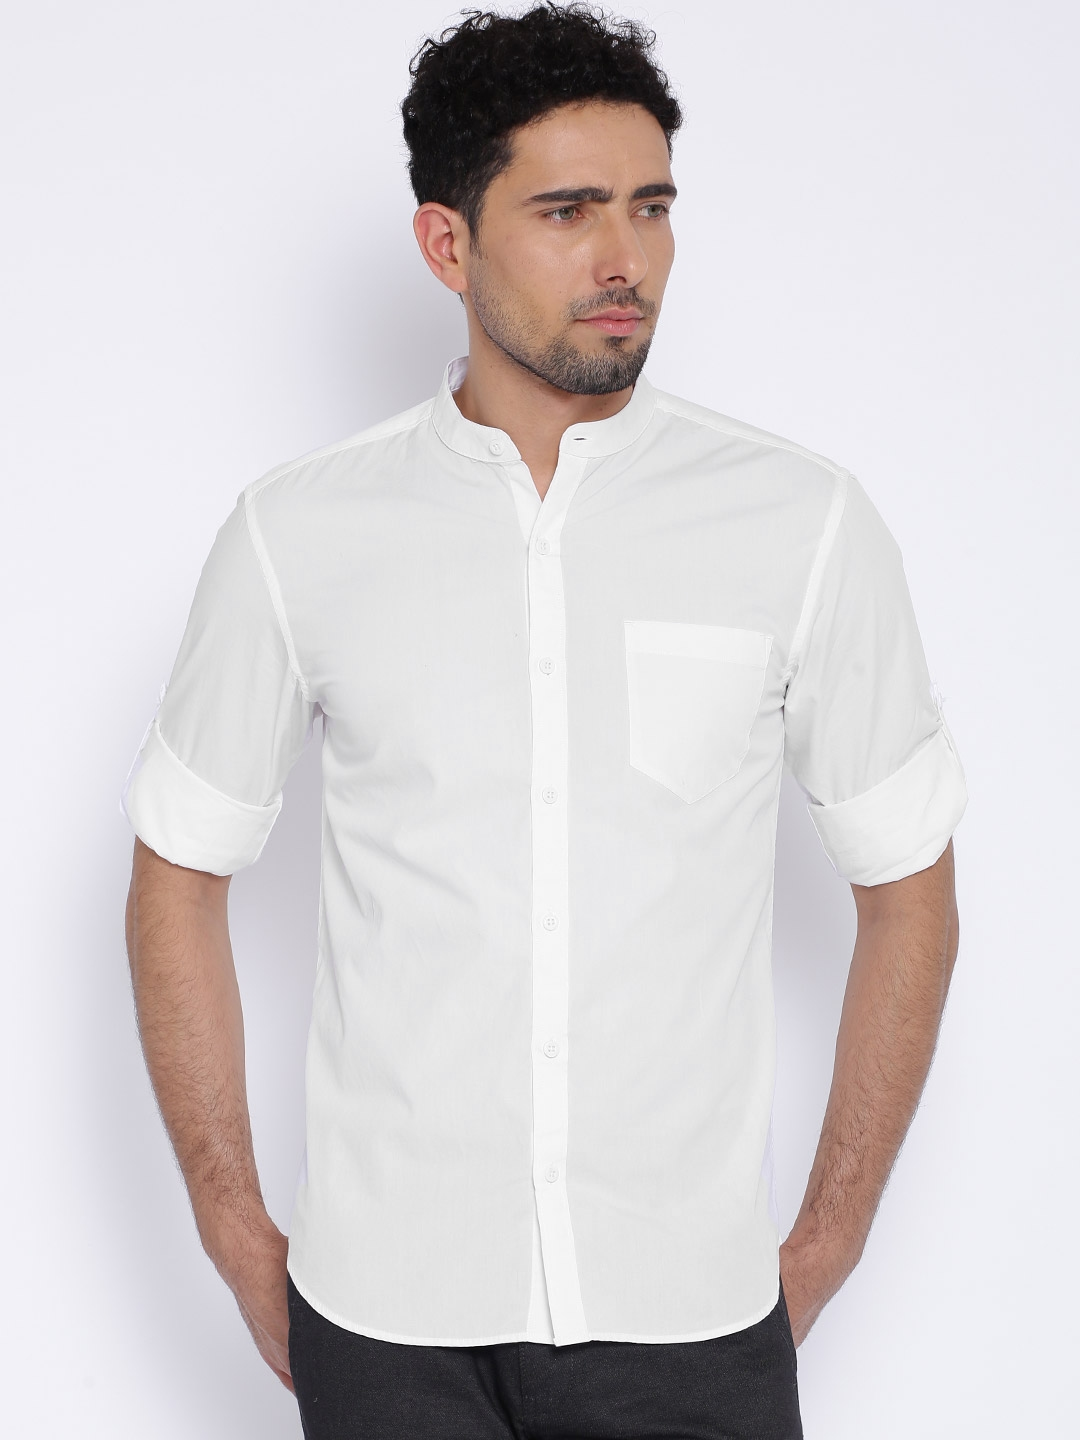 Buy Highlander White Slim Fit Casual Shirt - Shirts for Men | Myntra